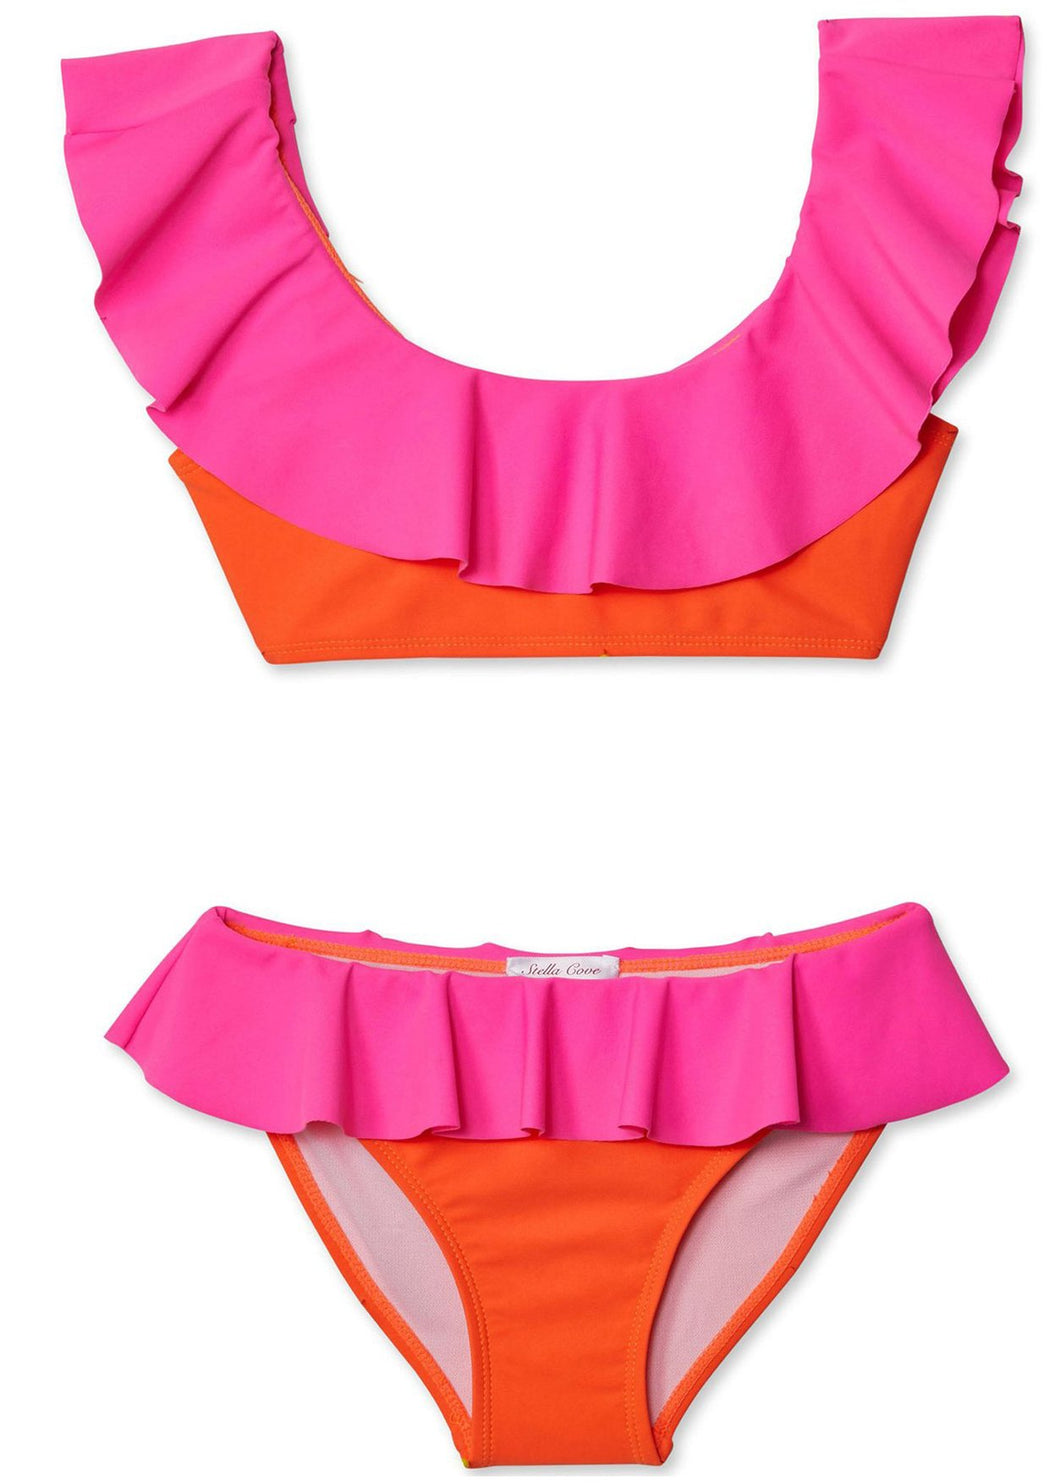 Neon Pink and Orange Bikini for Girls